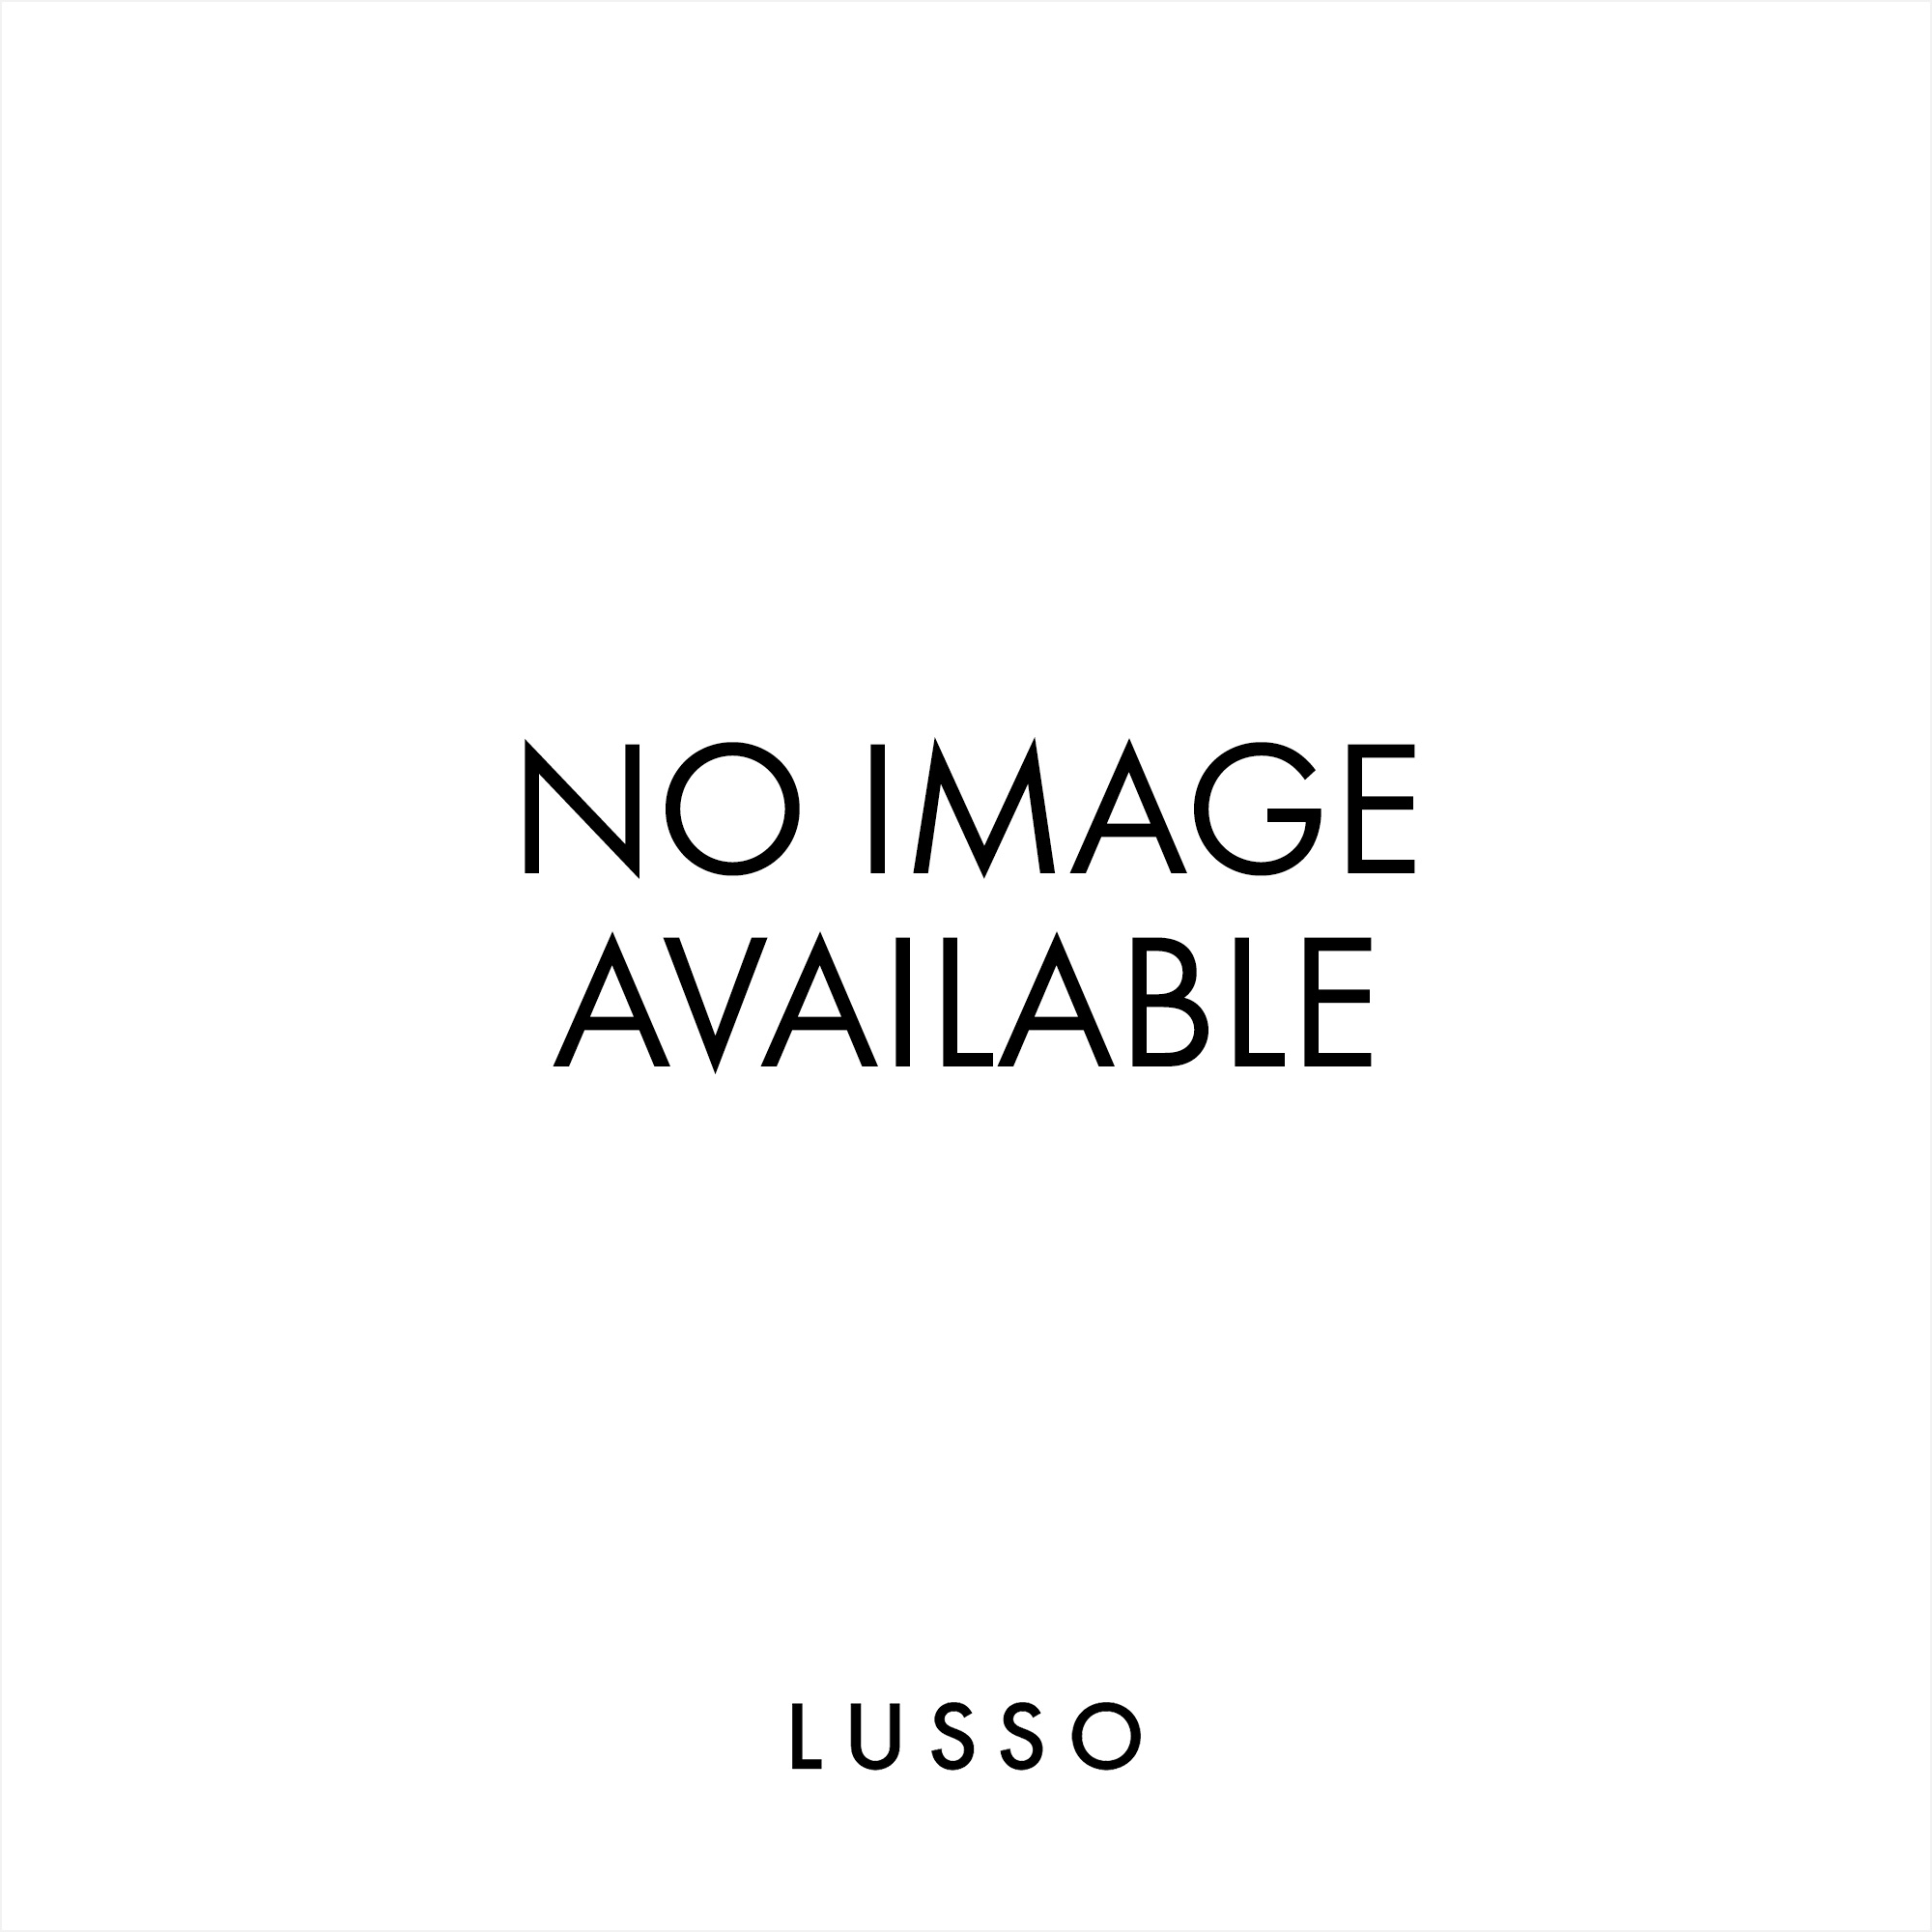 LUSSO STONE MODERN COMPLETE WALK IN SHOWER ENCLOSURE - KIT B (ALL SIZES)